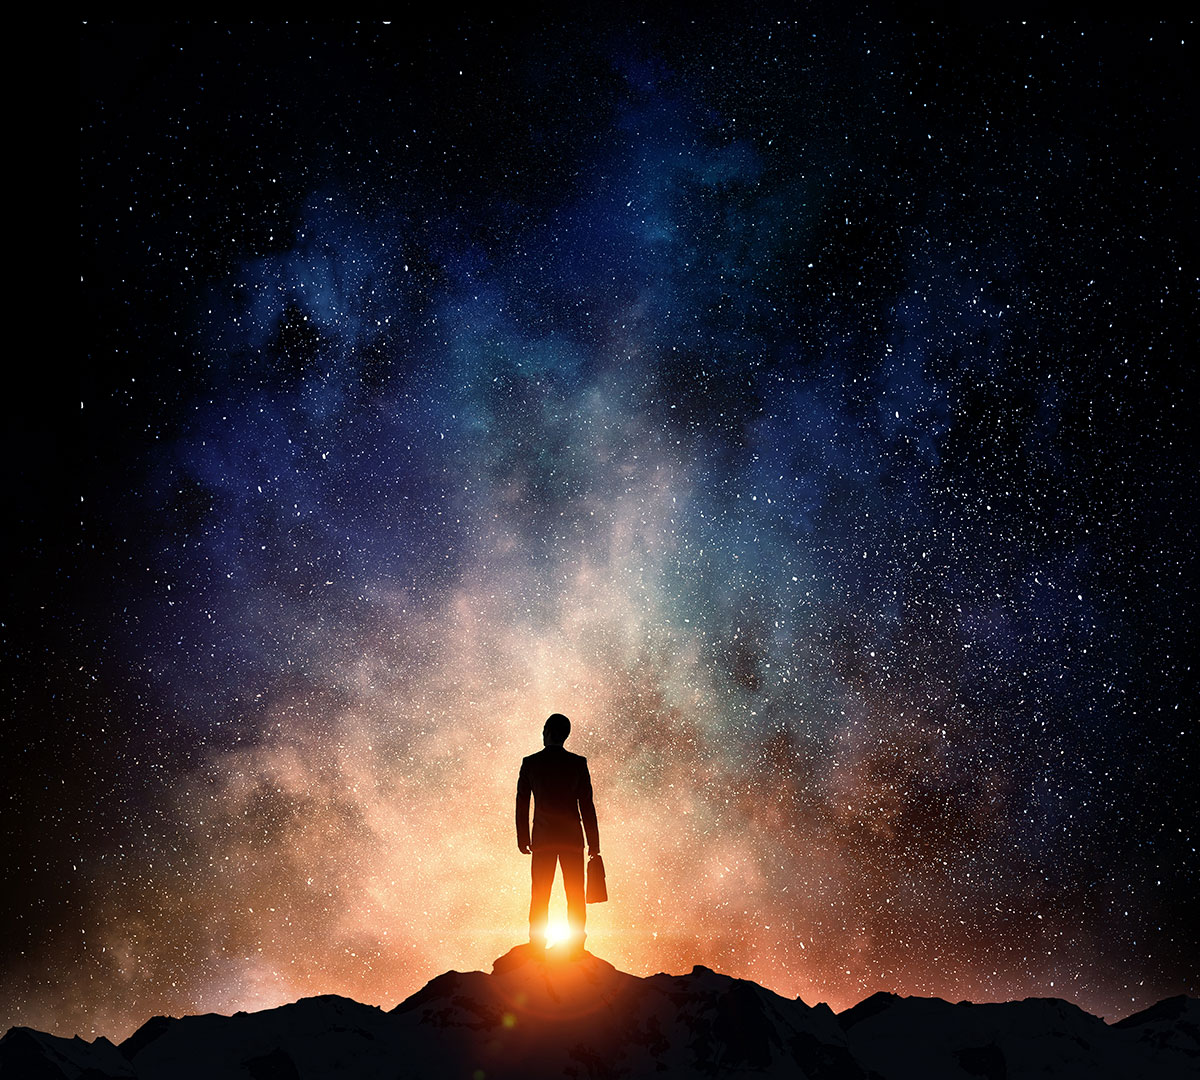 silhouette of man looking up into space